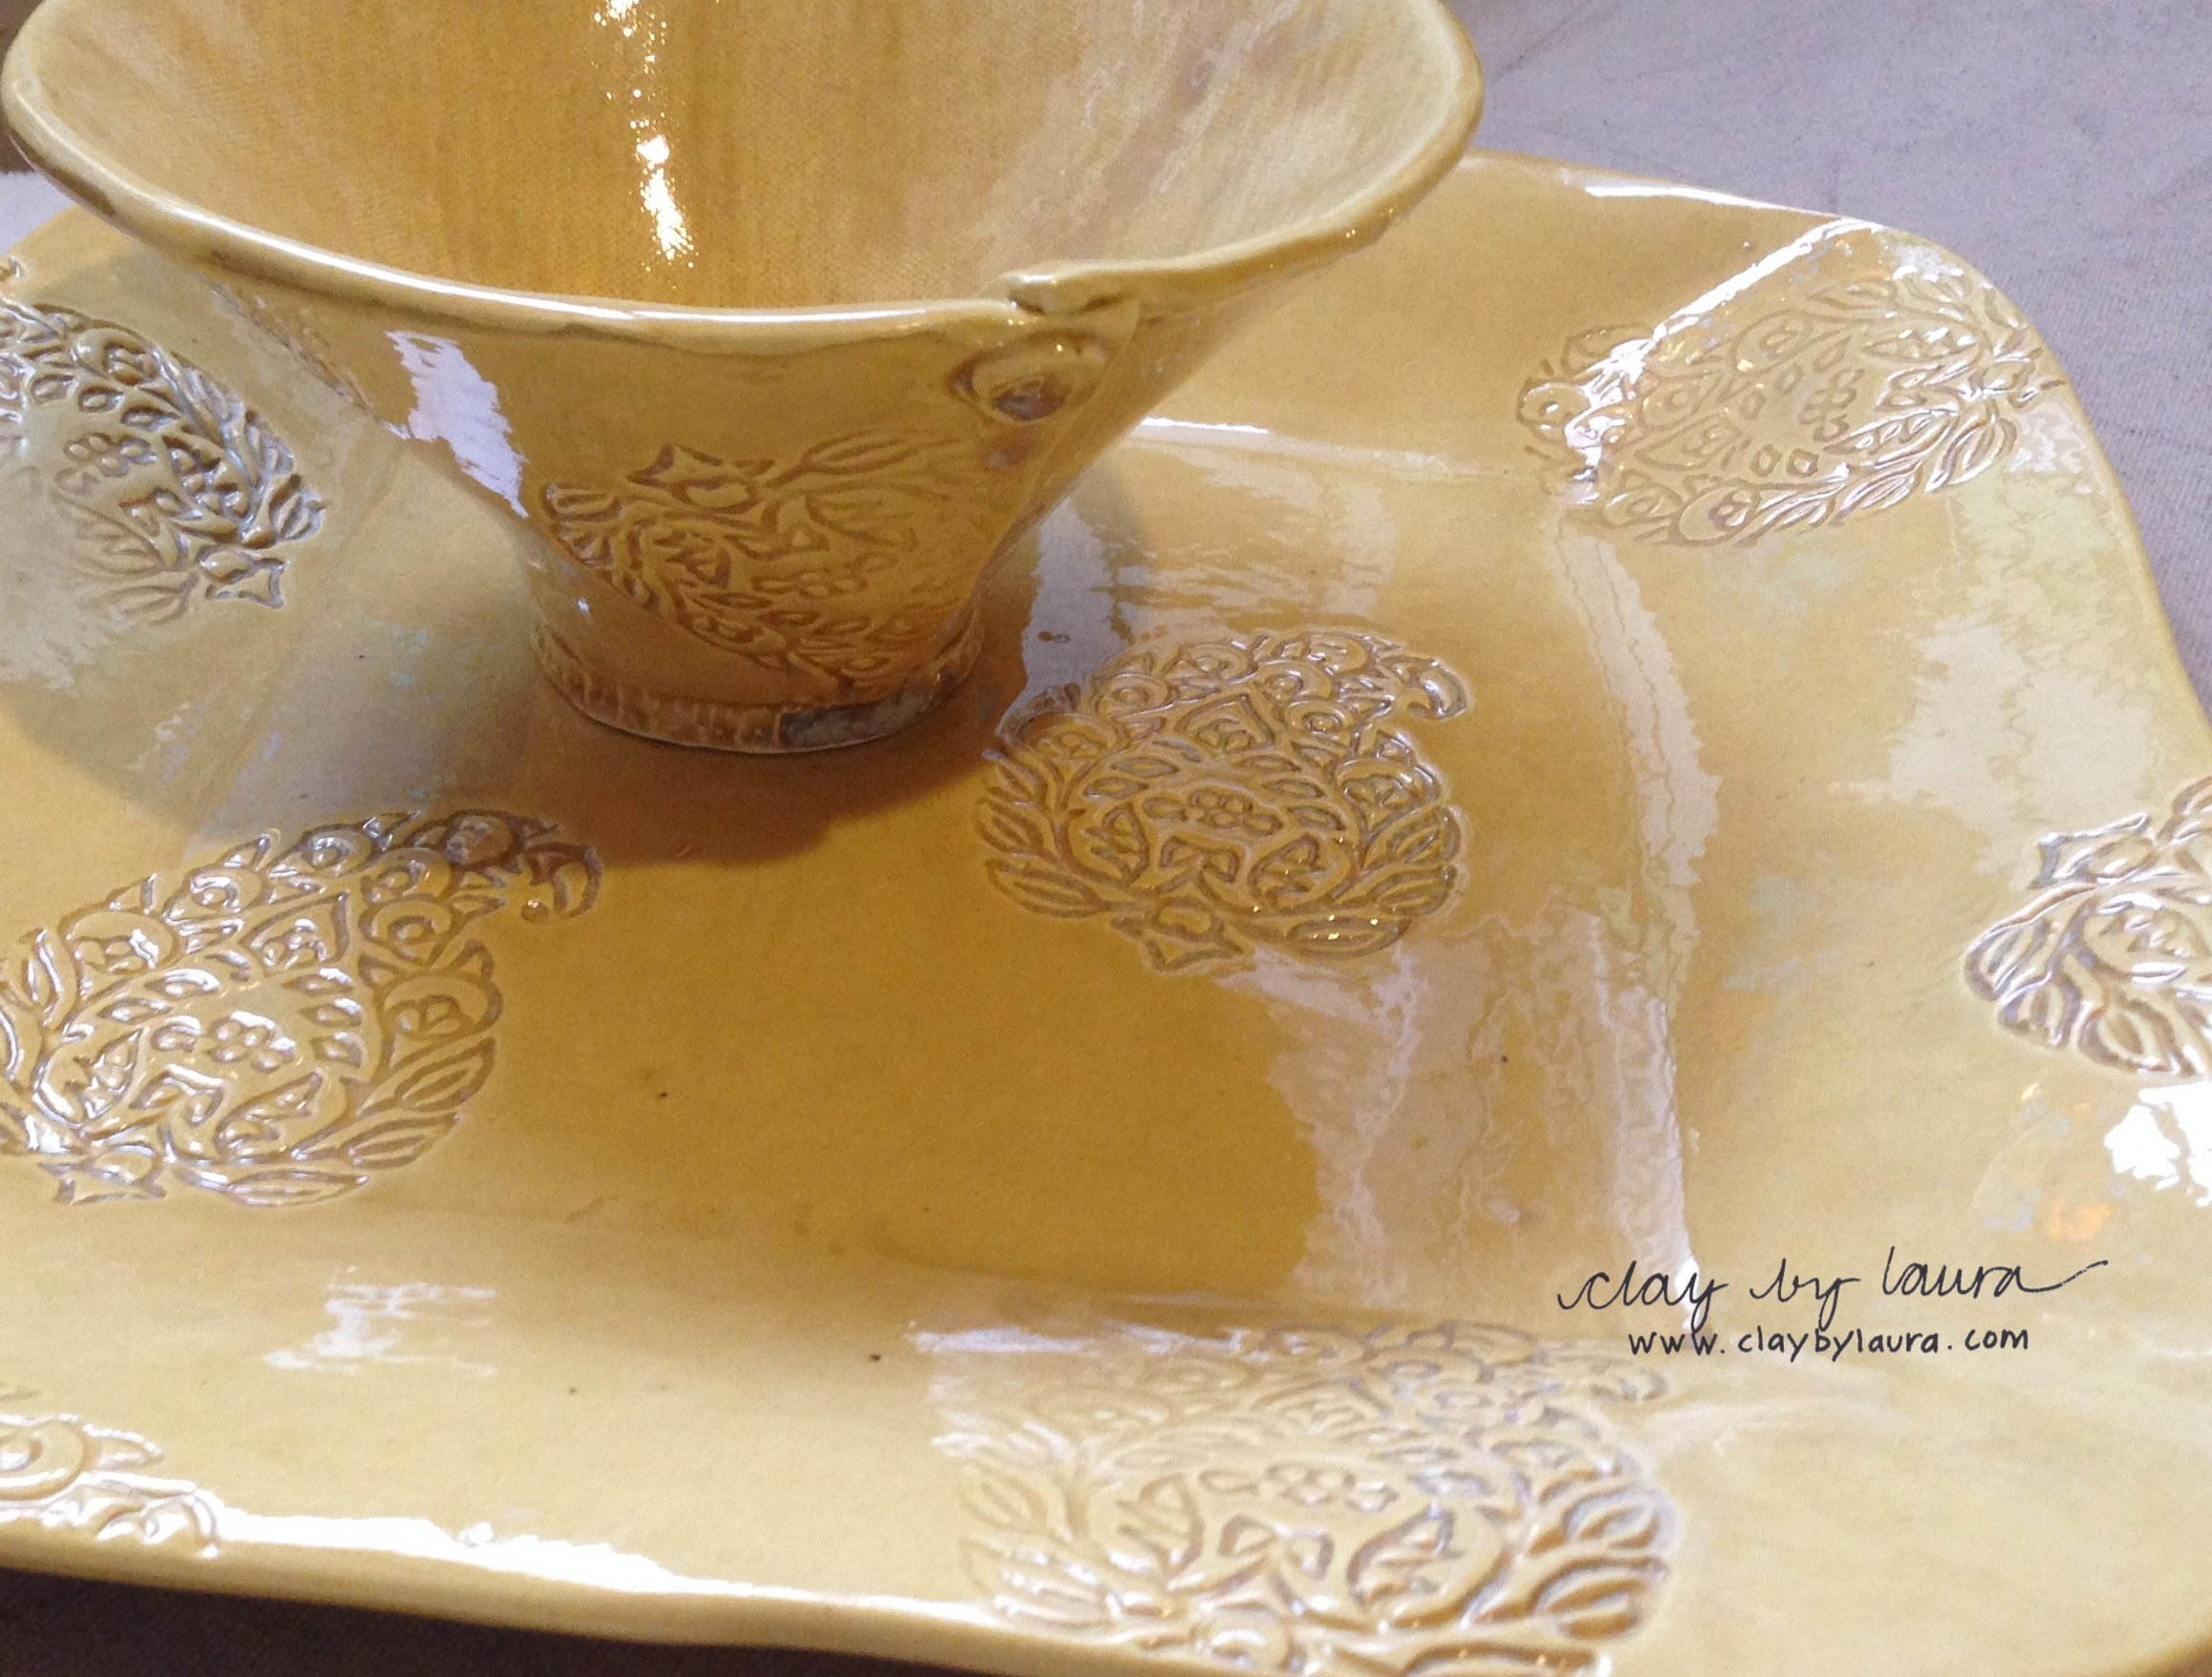 This custom bowl and square platter are ready for a wedding gift.